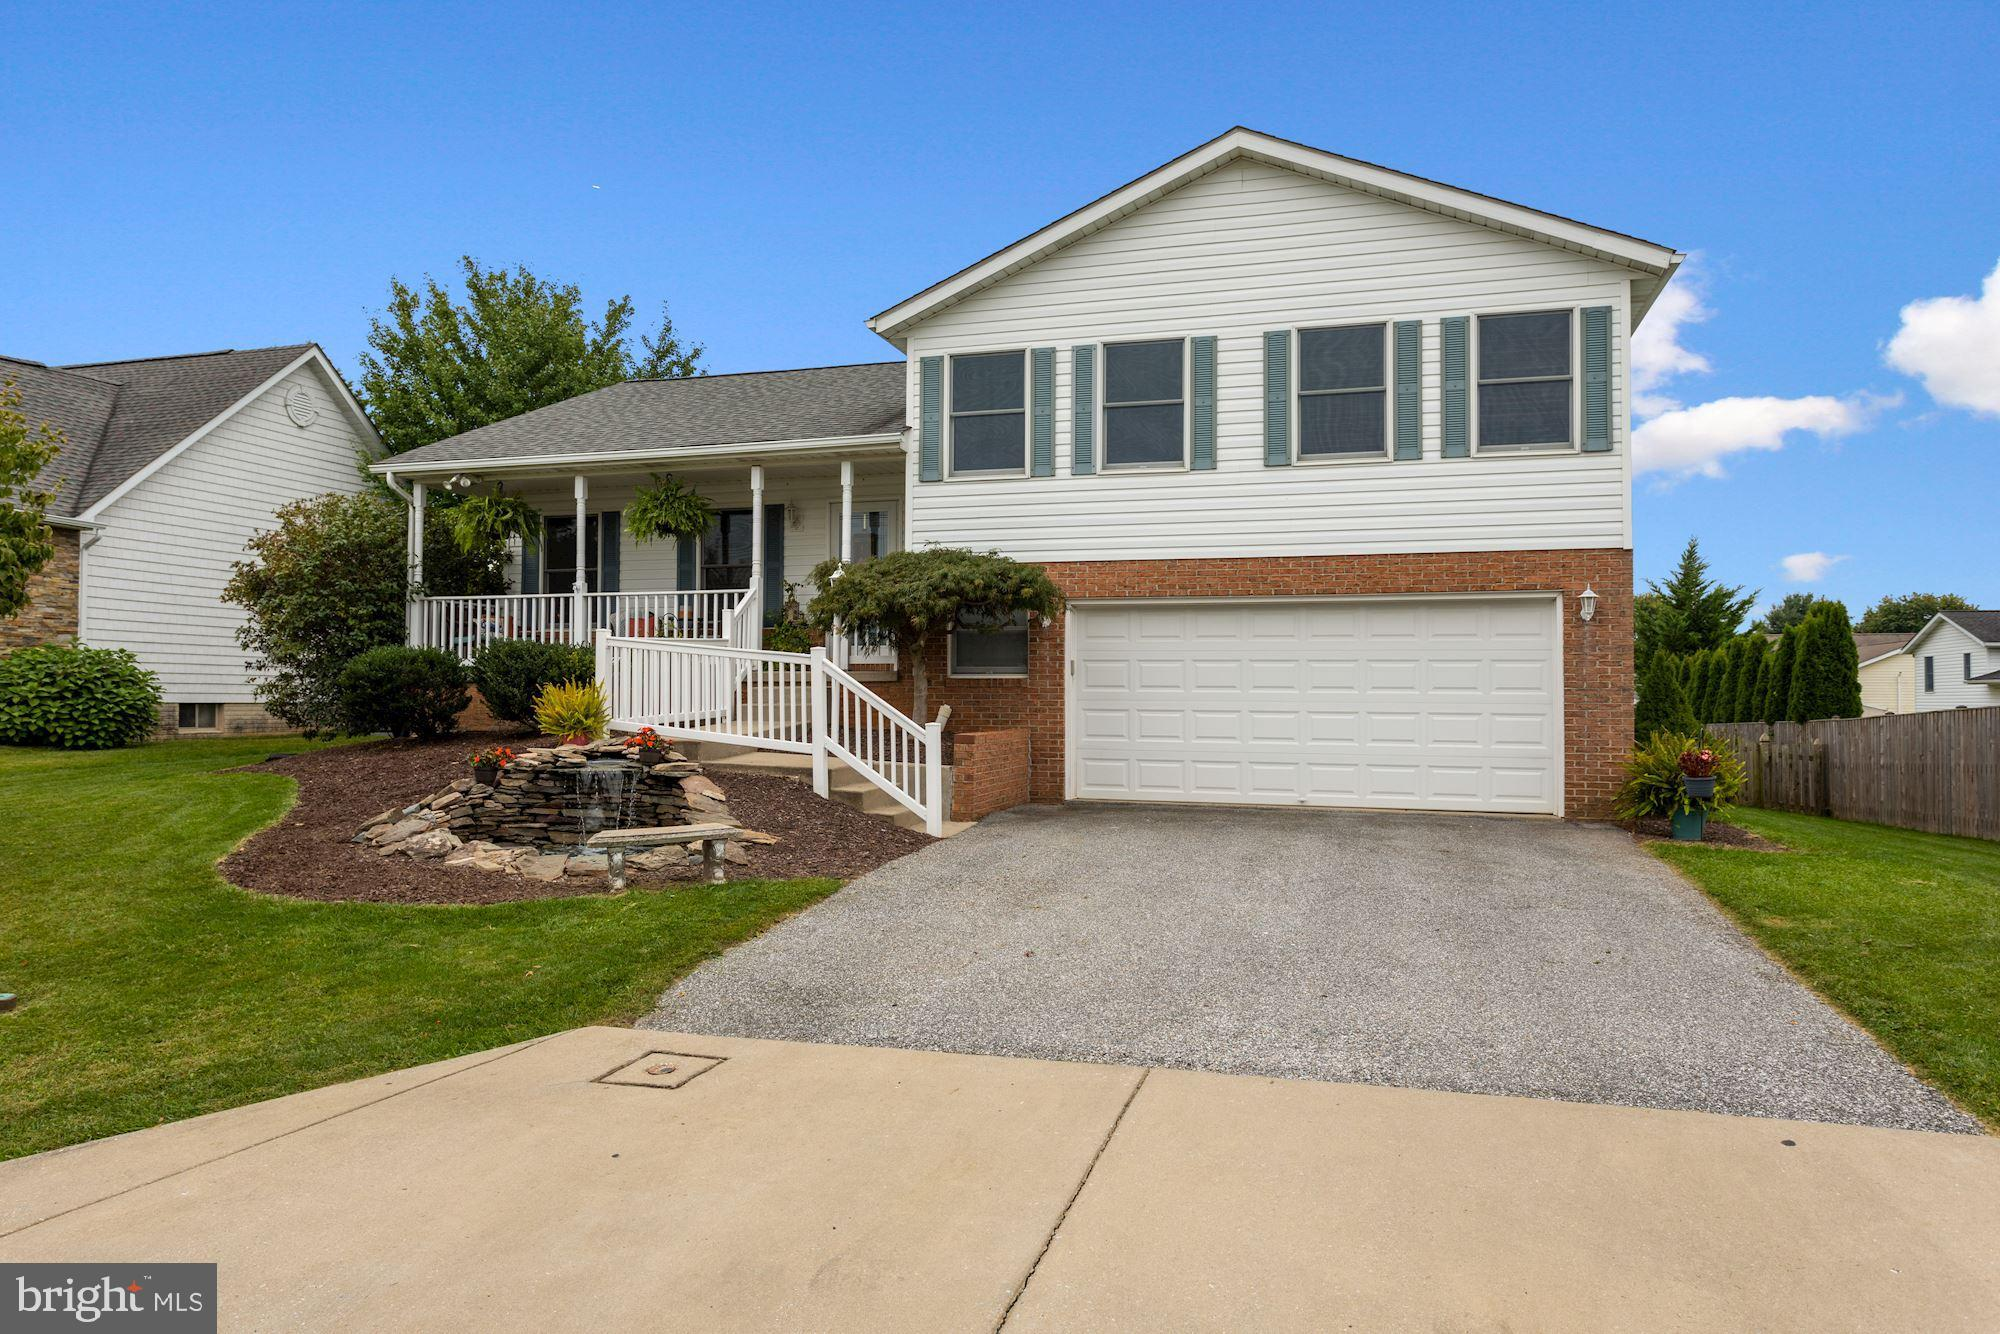 Loved and cared for, this home has it all and it starts at the front door! An inviting covered front